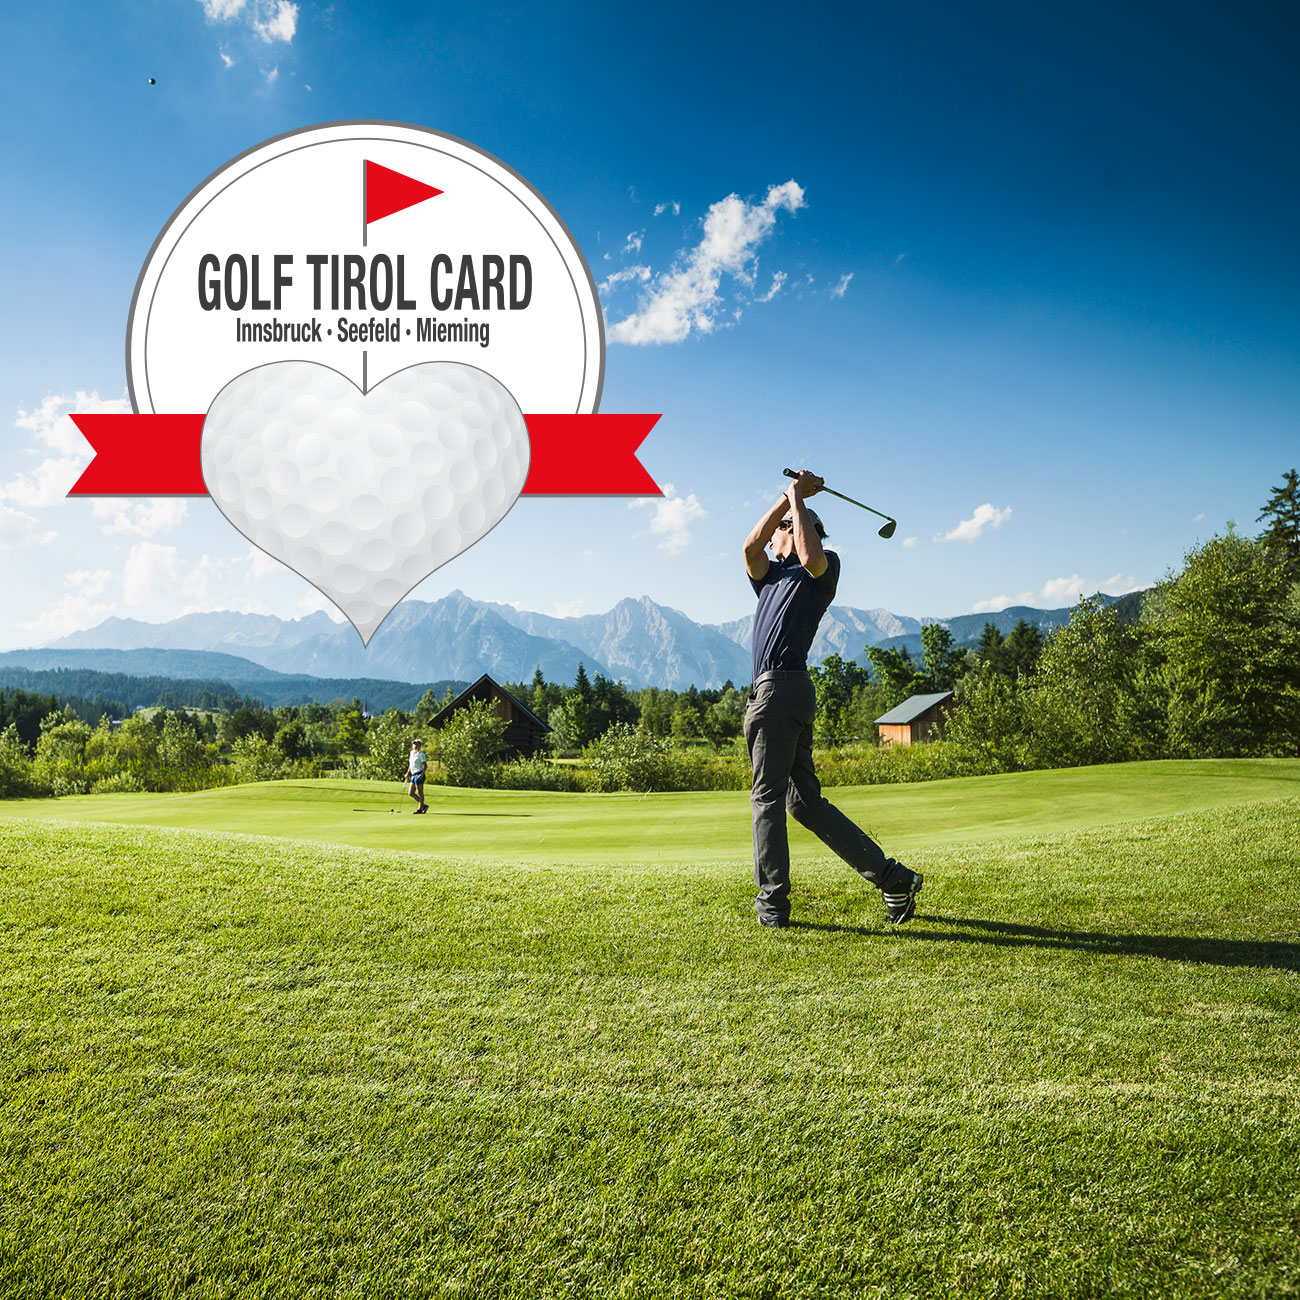 Golf Tirol Card